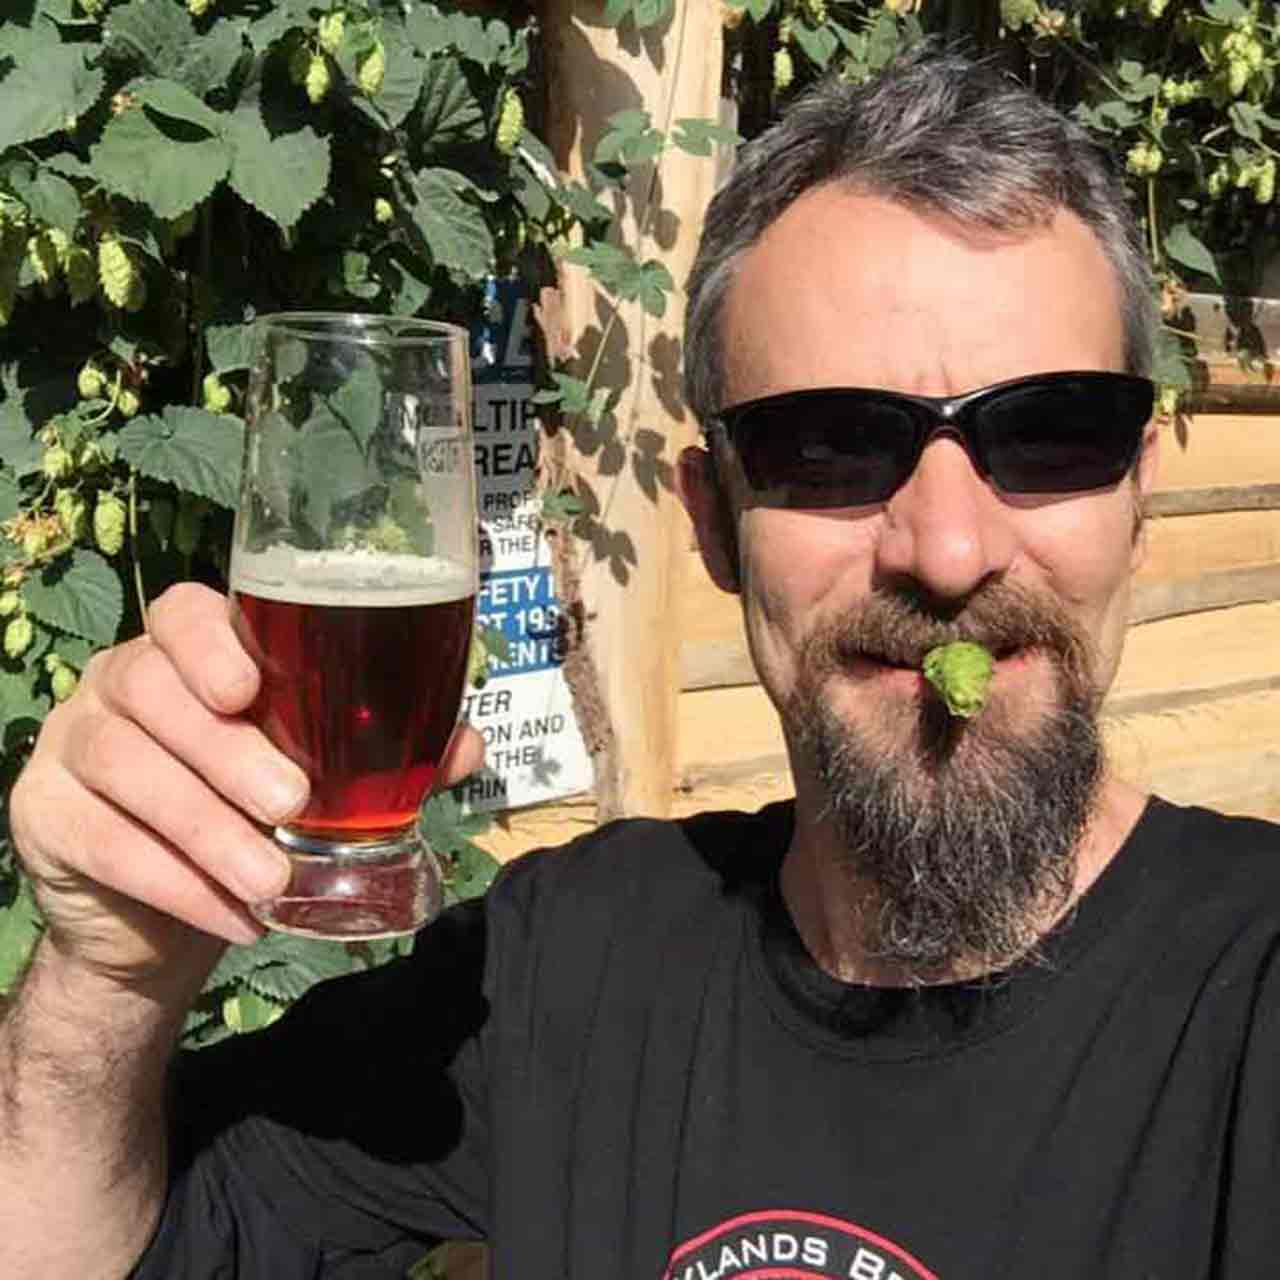 Paul Wicksteed with hop in mouth